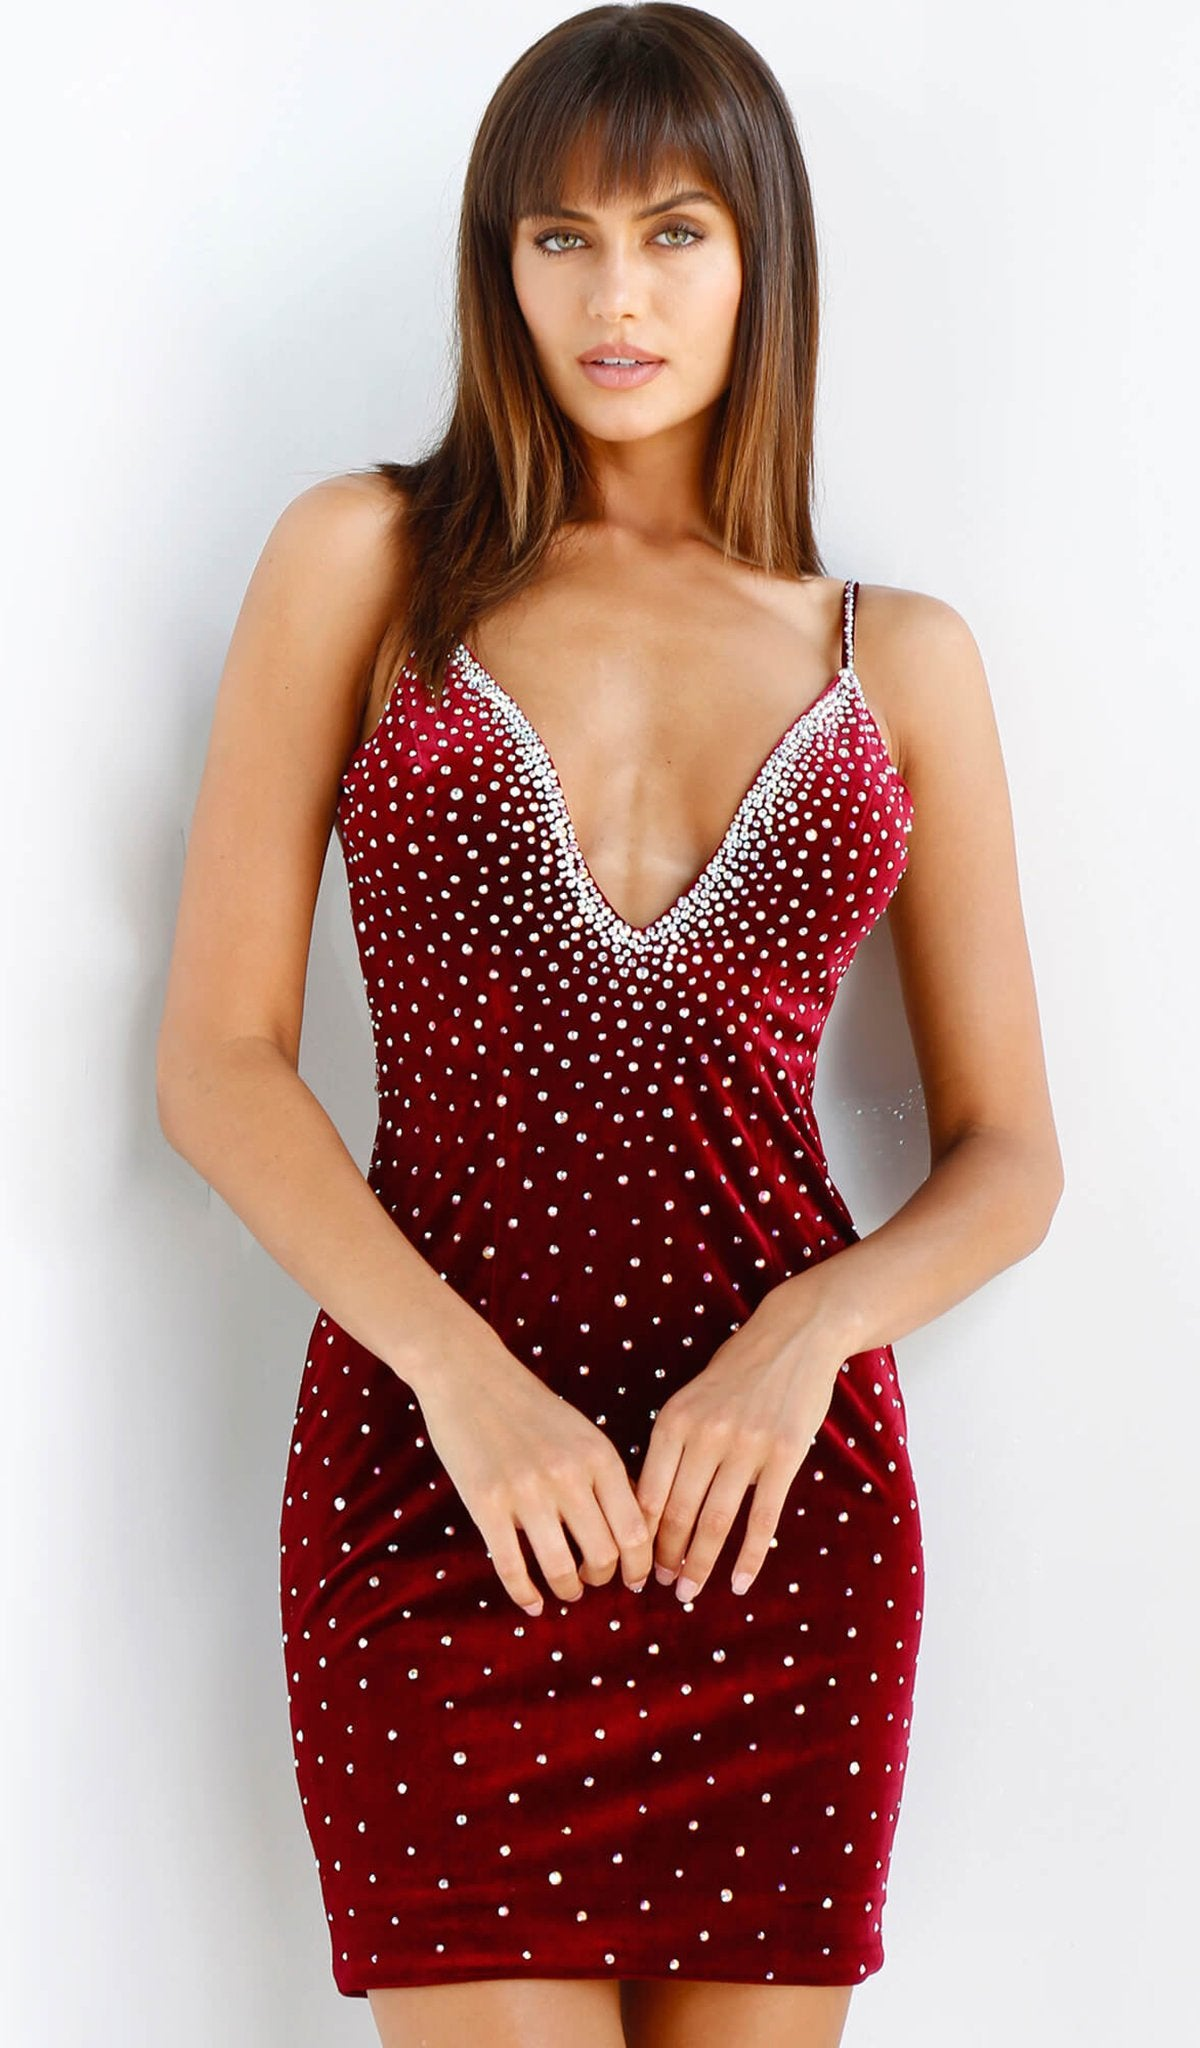 Jovani - 63880 Plunging Rhinestone-Sprinkled Velvet Dress in Red